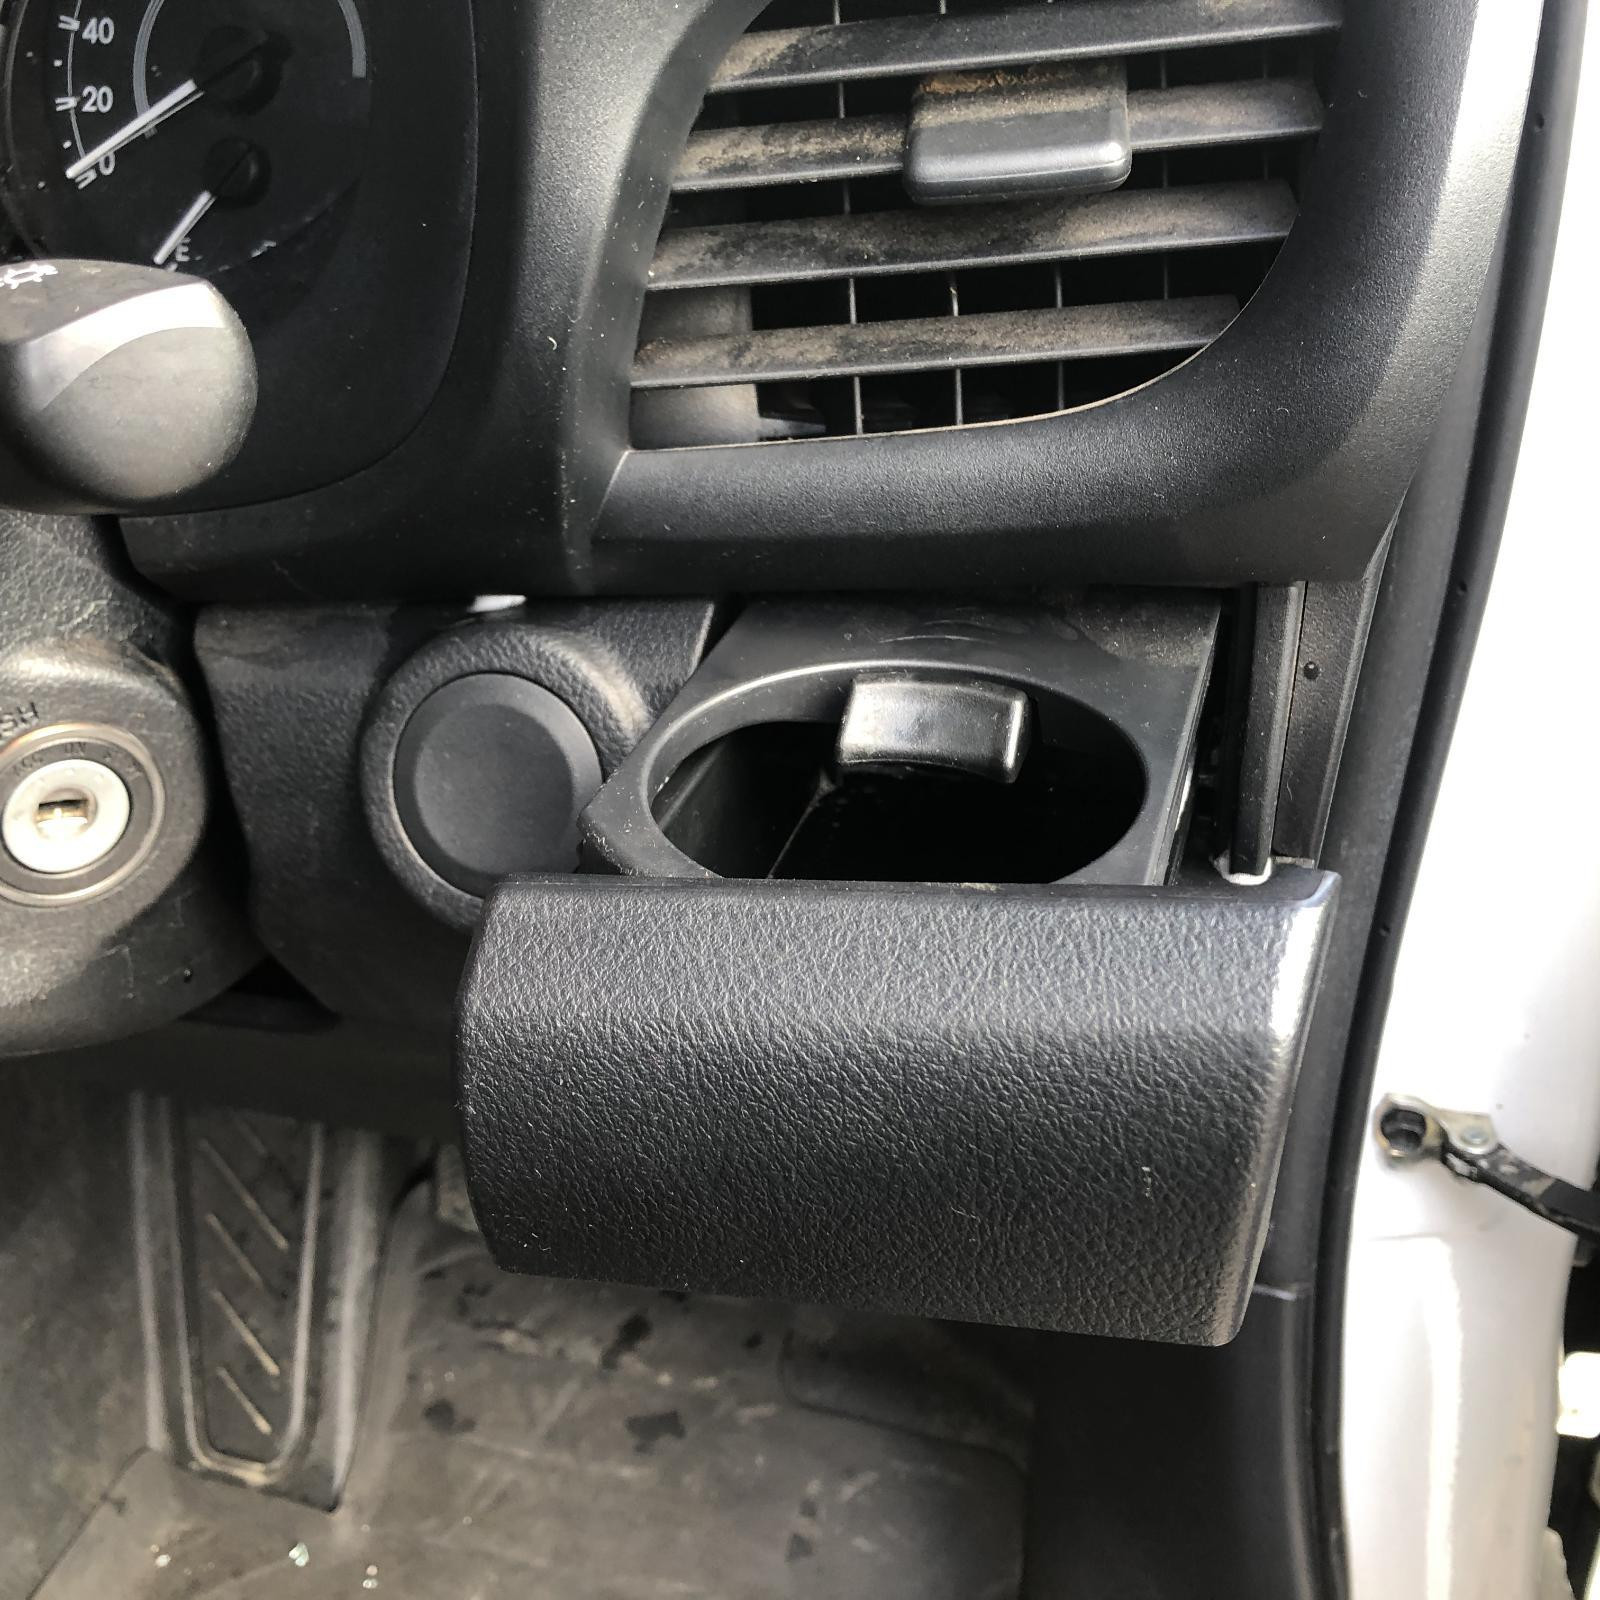 TOYOTA HILUX, Trim Panel, CUP HOLDER IN DASH (LH SIDE), 09/15-